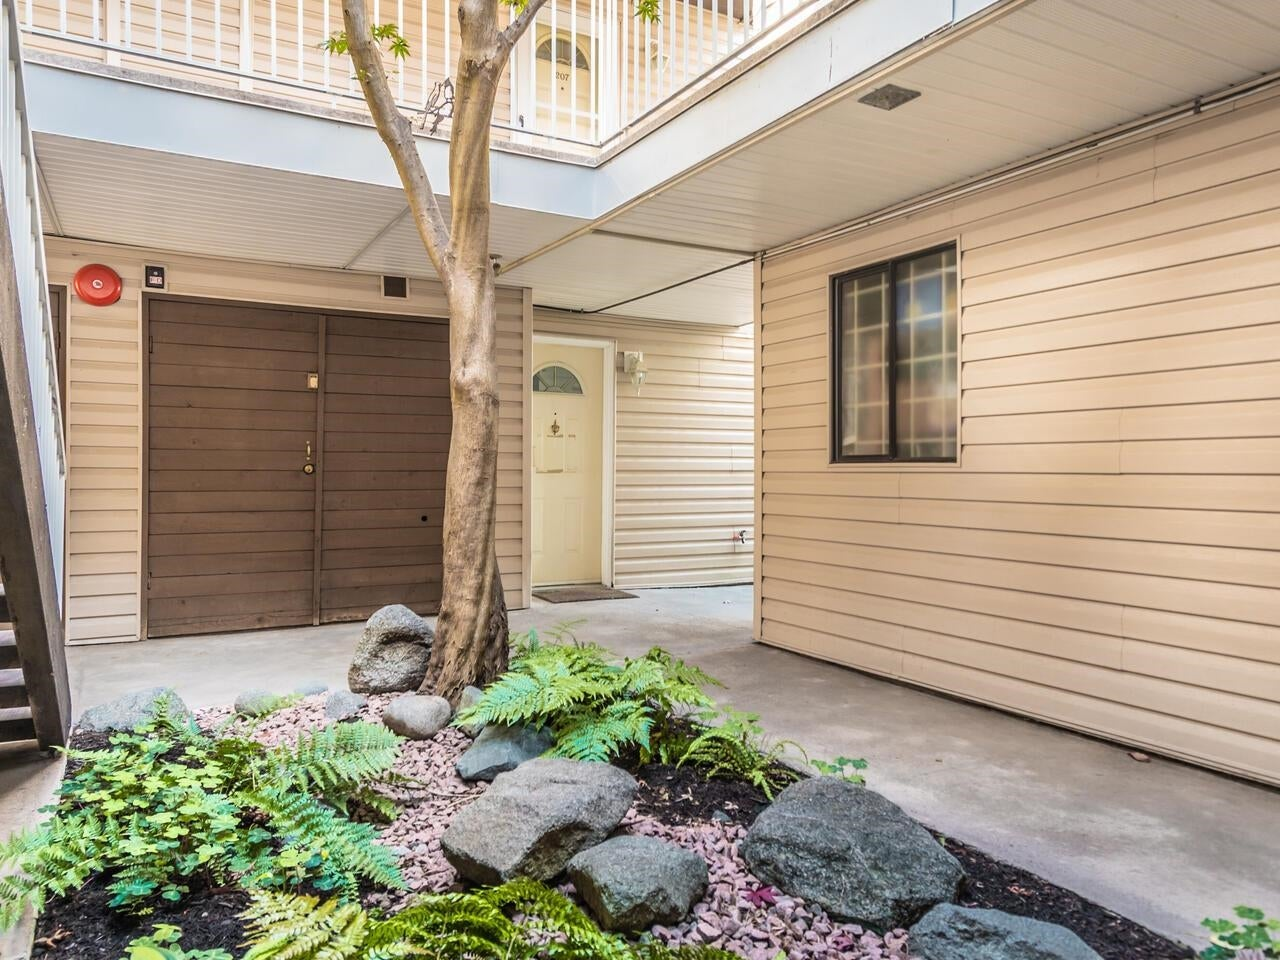 107 5191 203 STREET - Langley City Apartment/Condo for sale, 2 Bedrooms (R2625712) - #2